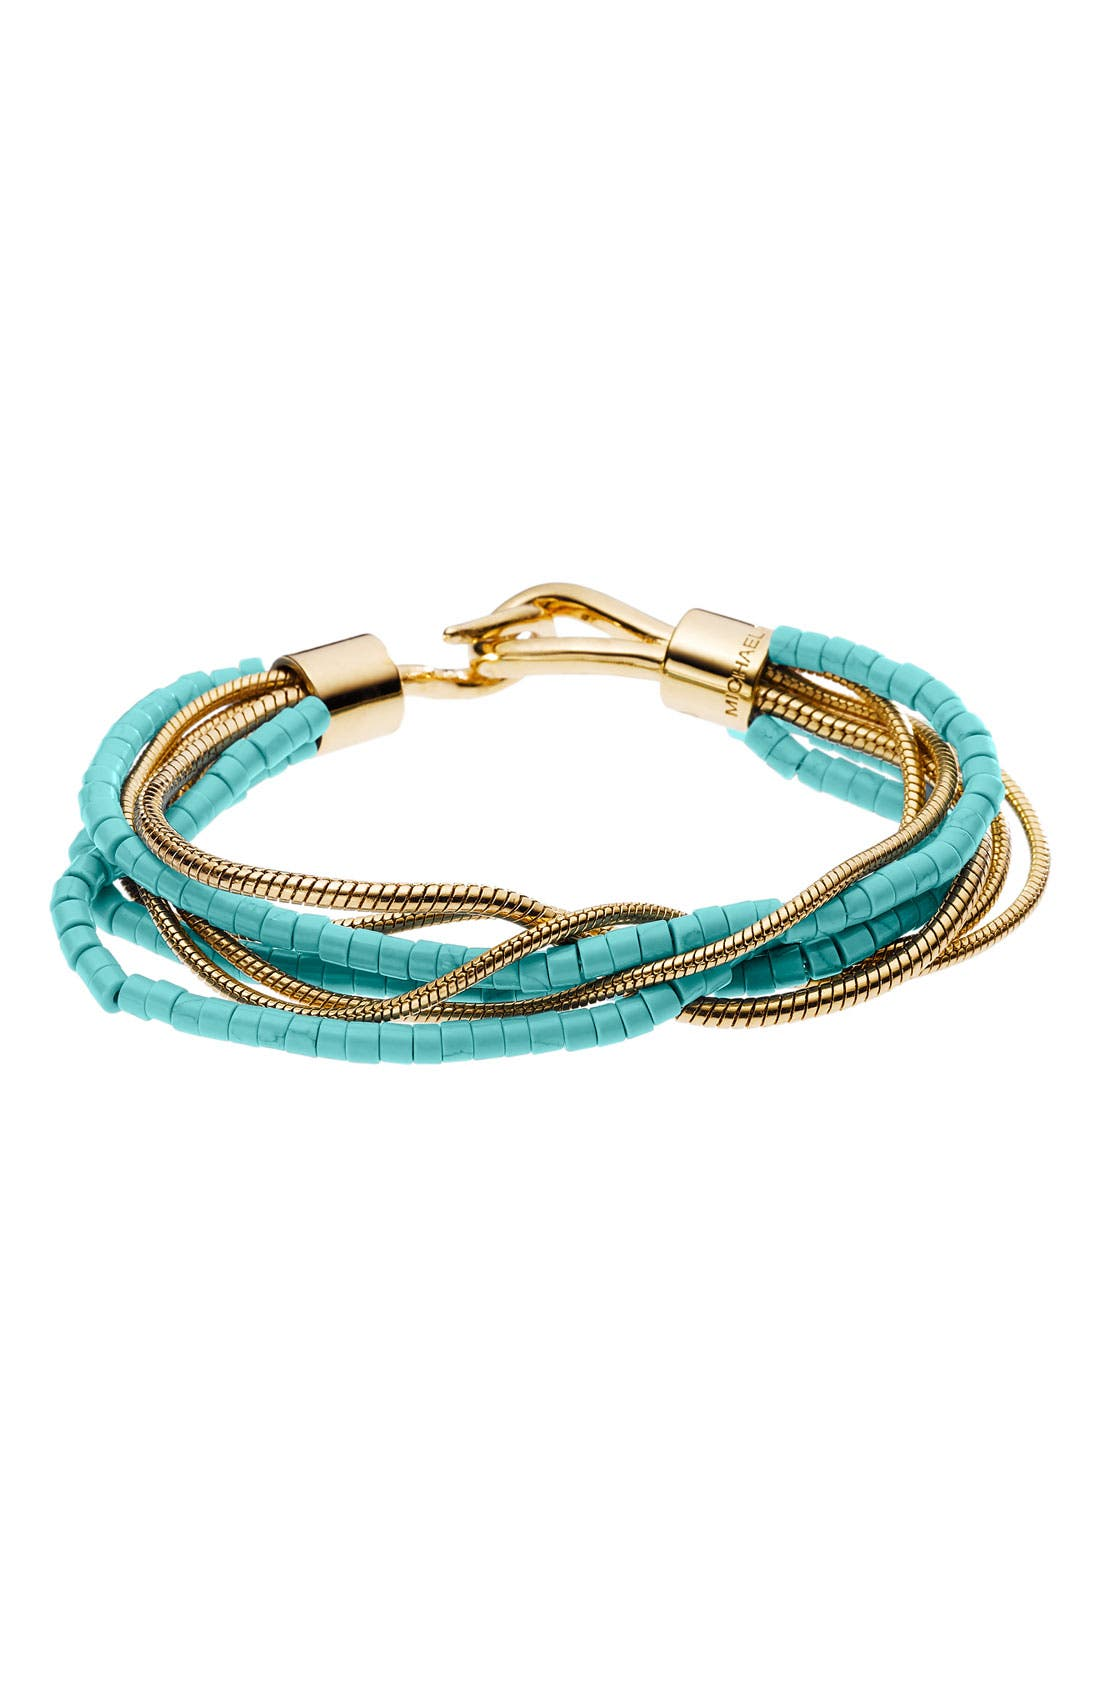 Alternate Image 1 Selected - Michael Kors 'Sleek Exotics' Multistrand Bracelet